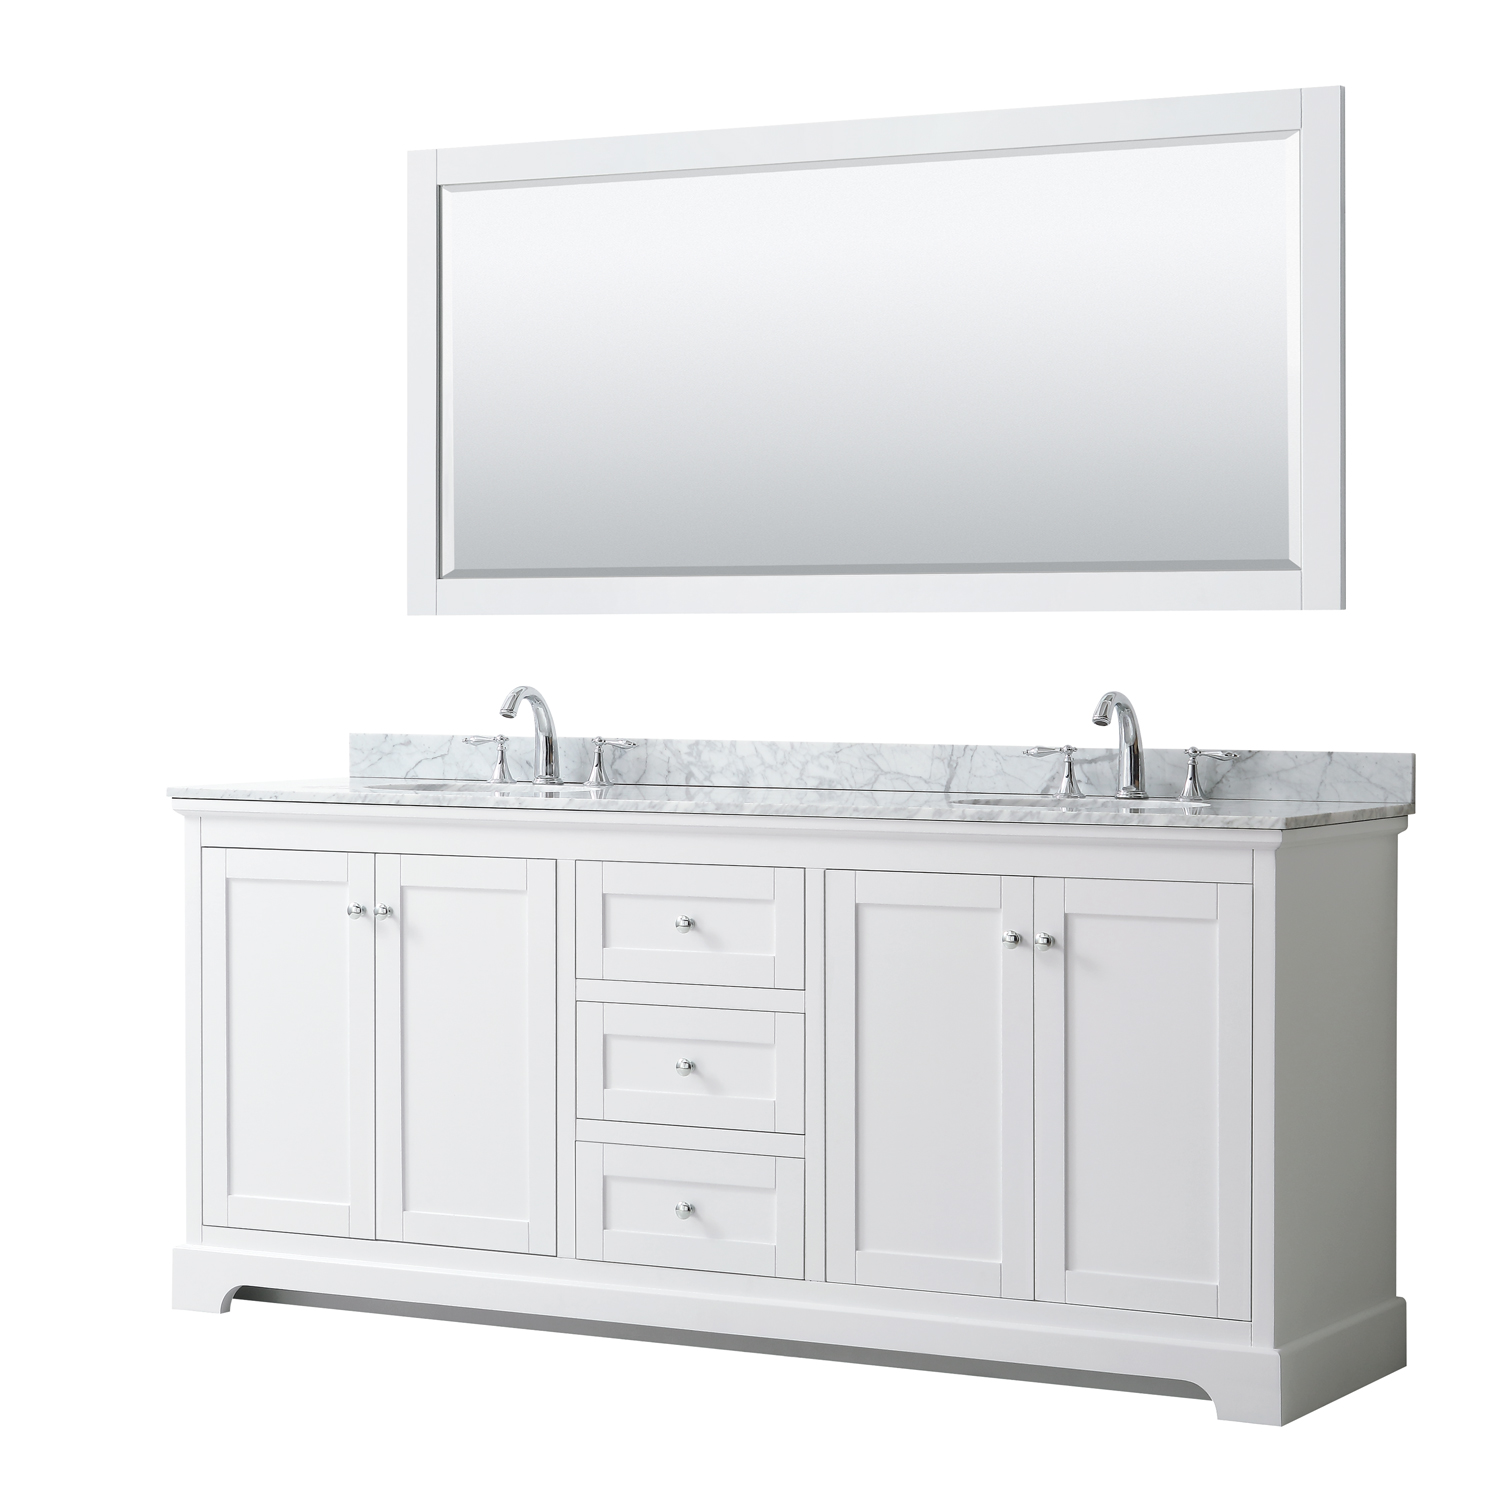 Avery 80 Double Bathroom Vanity By Wyndham Collection White Beautiful Bathroom Furniture For Every Home Wyndham Collection